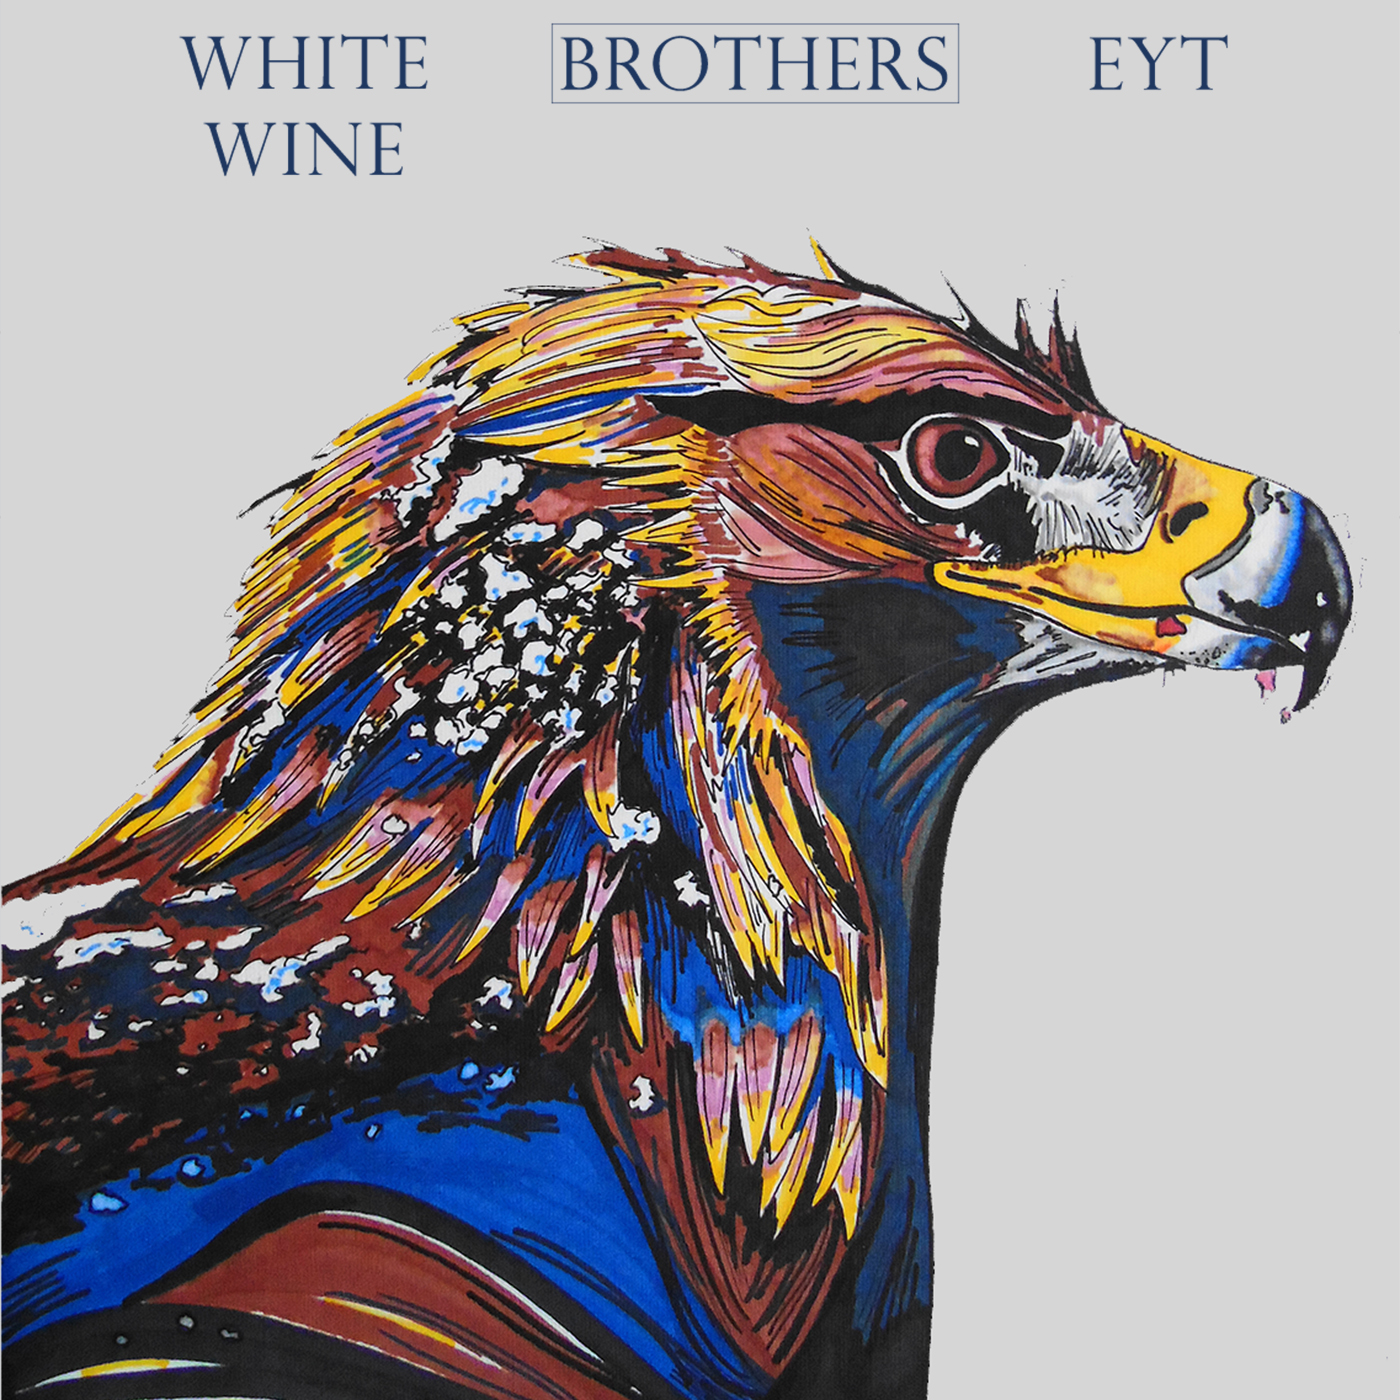 Brothers - 'White Wine' & 'EYT'